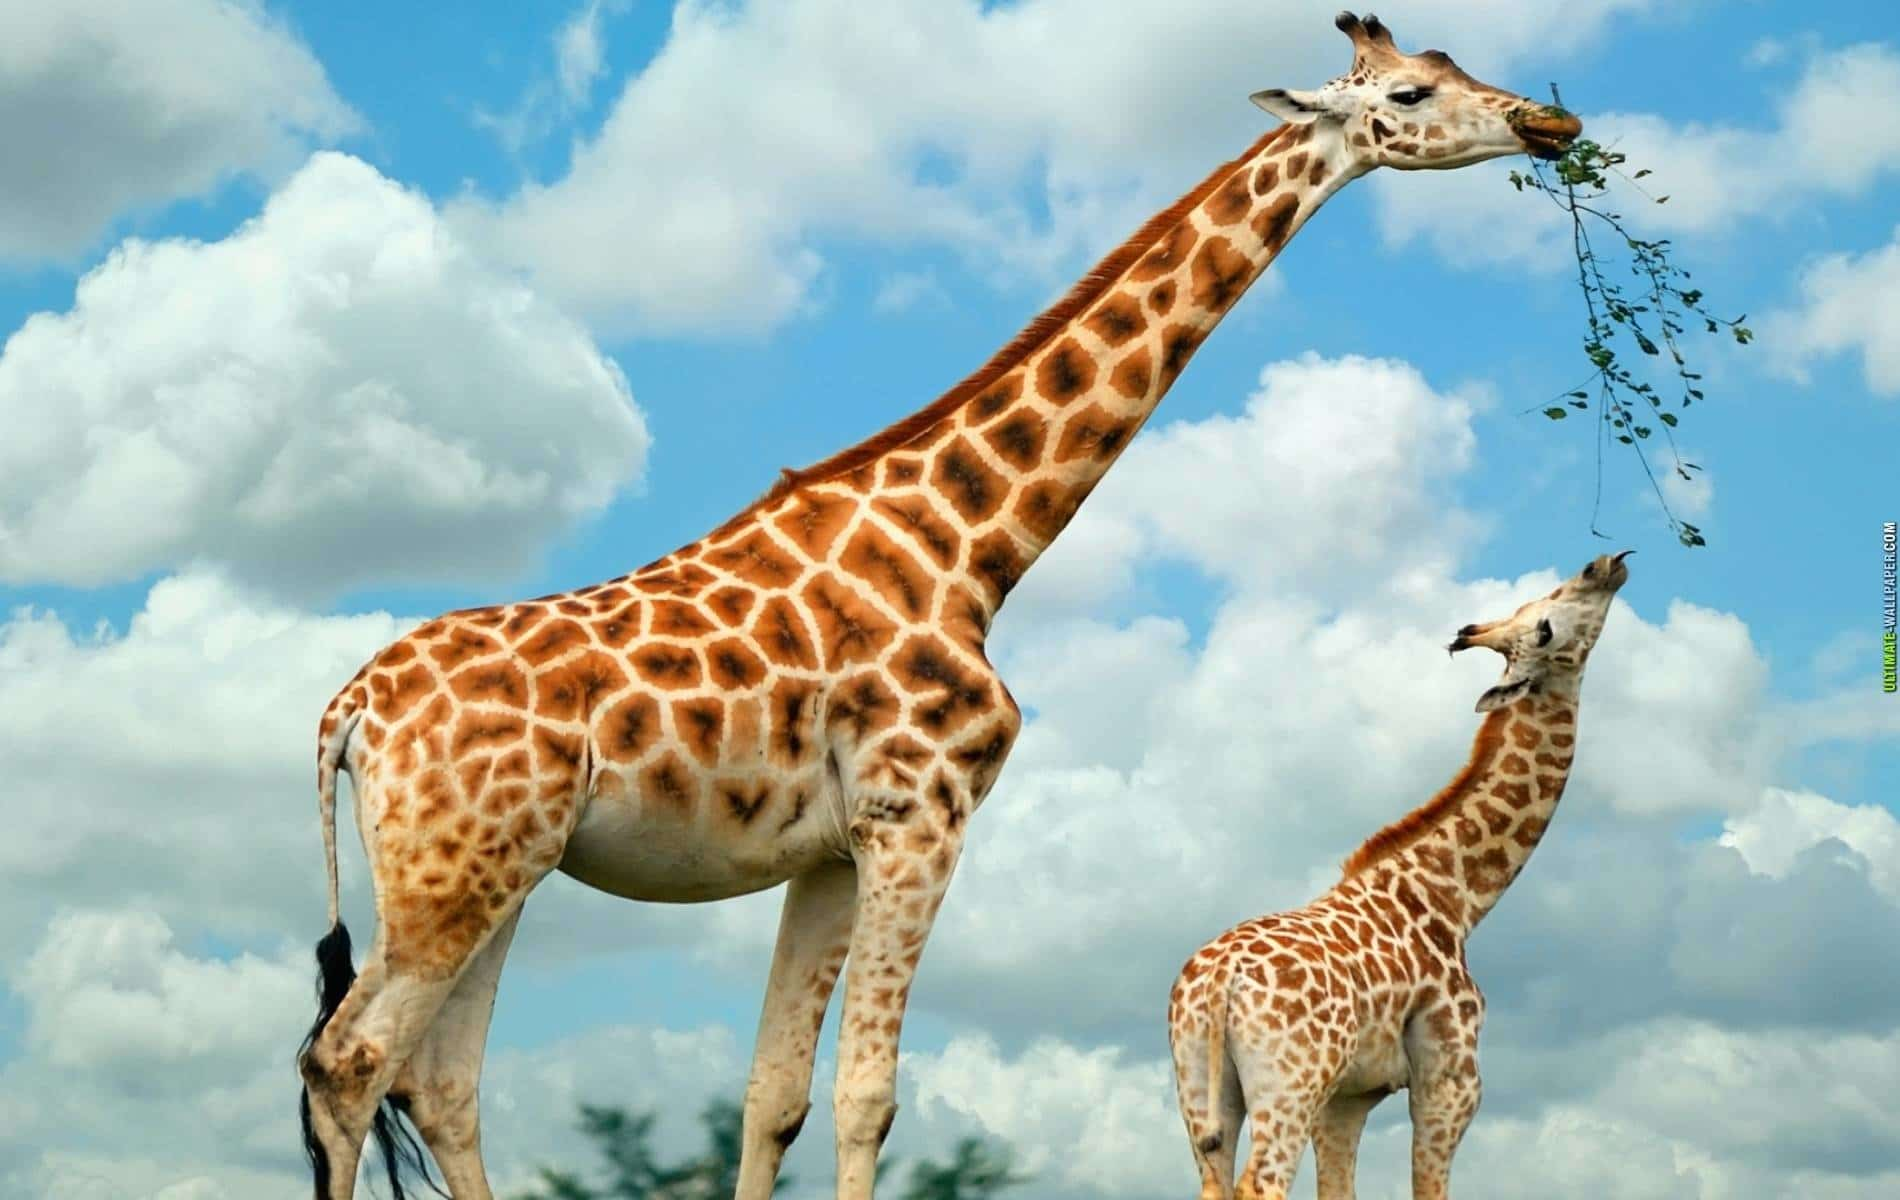 Giraffe Facts, Information Pictures and Video Learn More